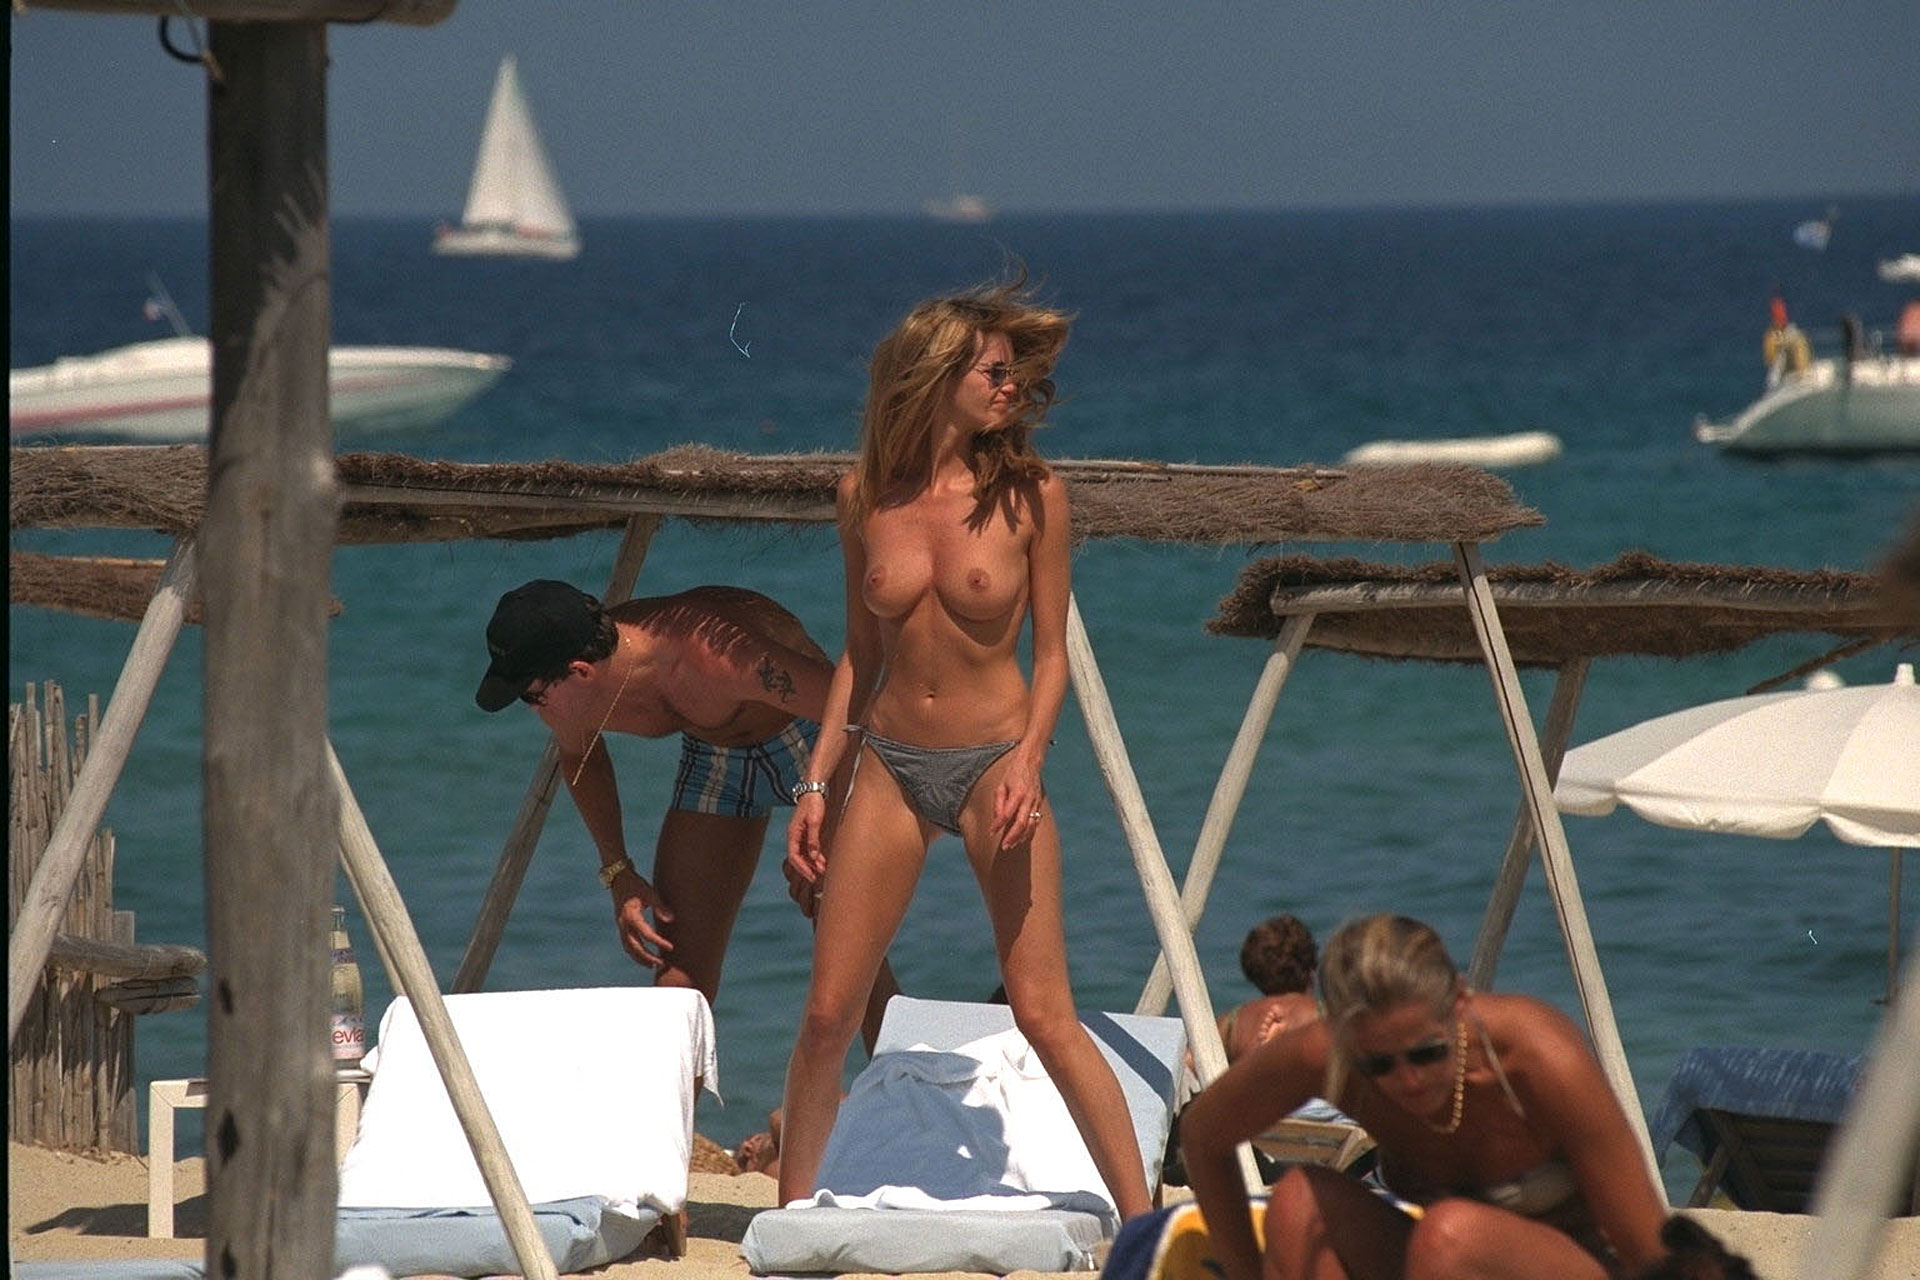 Elle mcpherson nude hentay pic